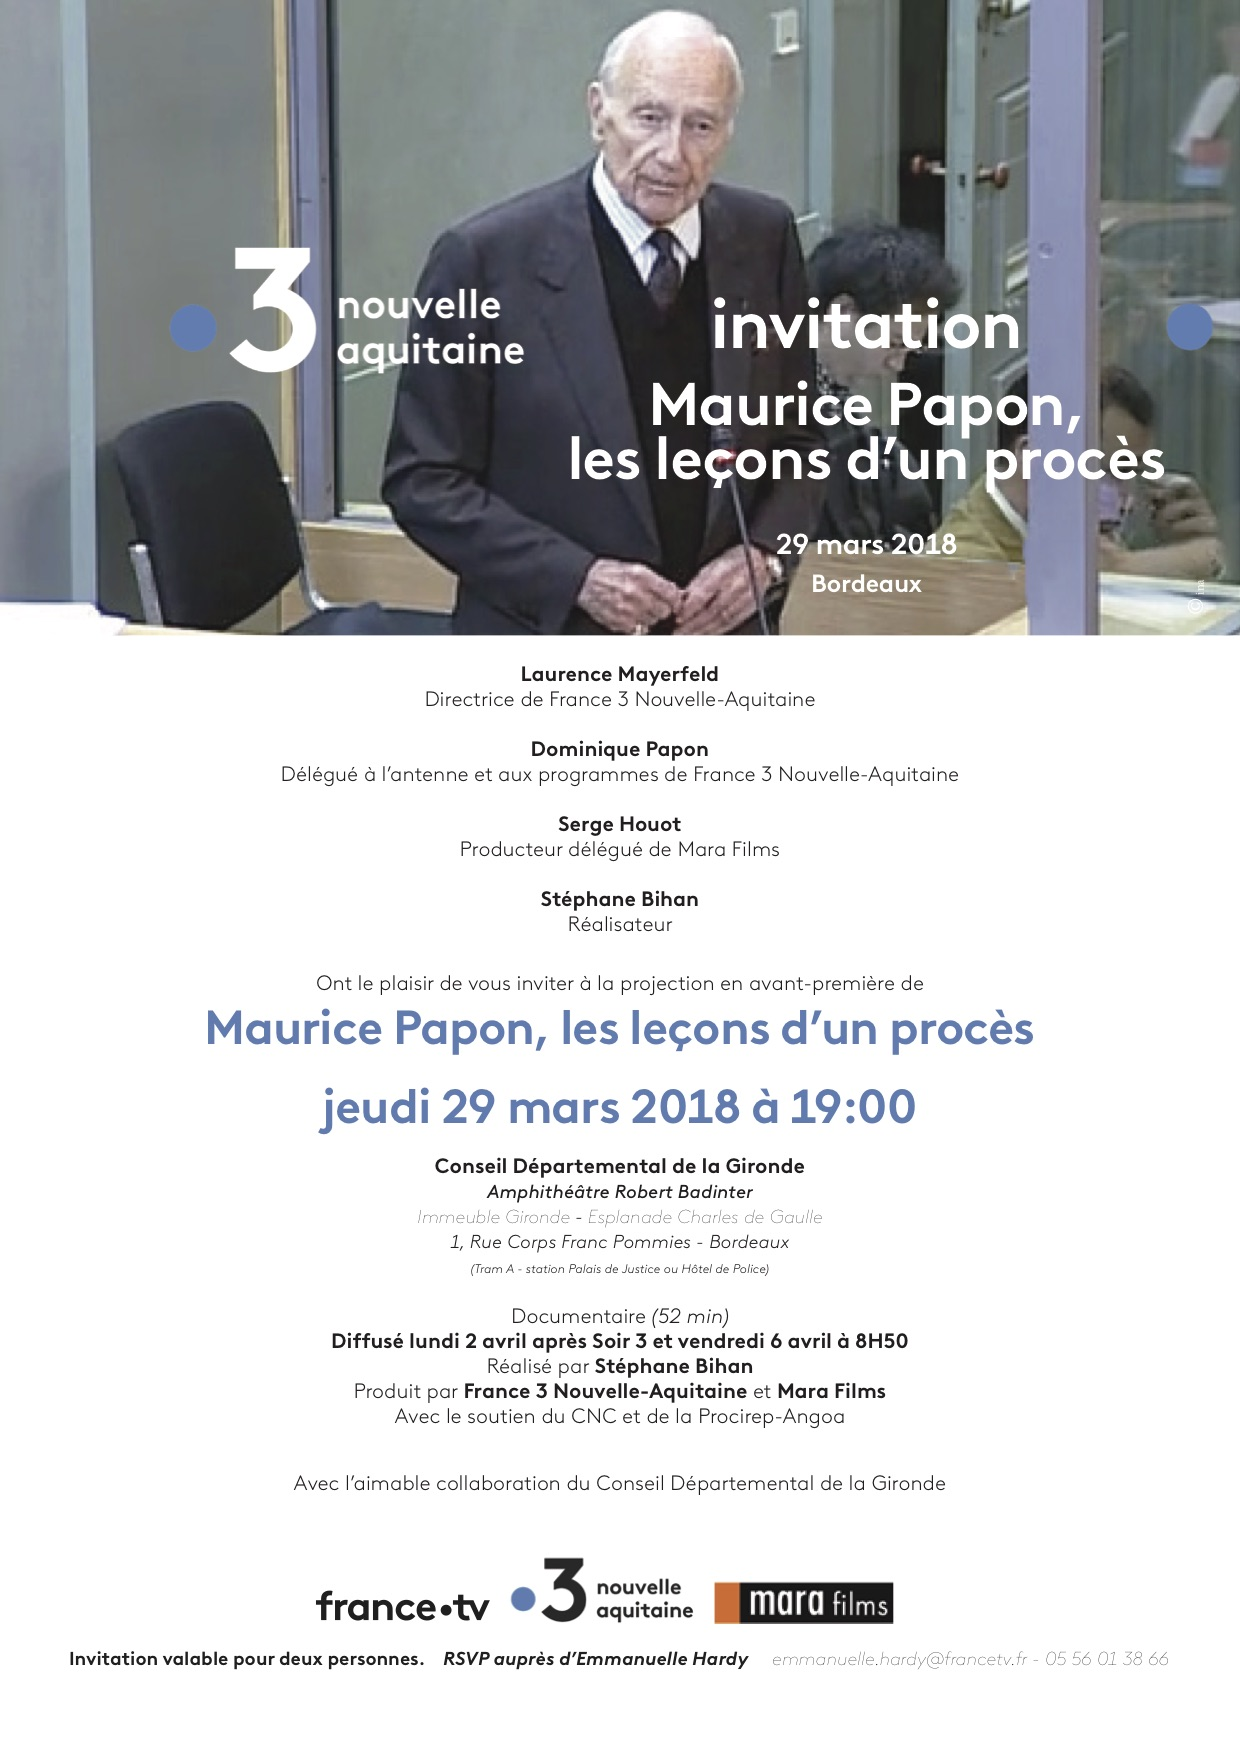 invitation-avp-maurice-papon-les-lec%cc%a7ons-dun-proces